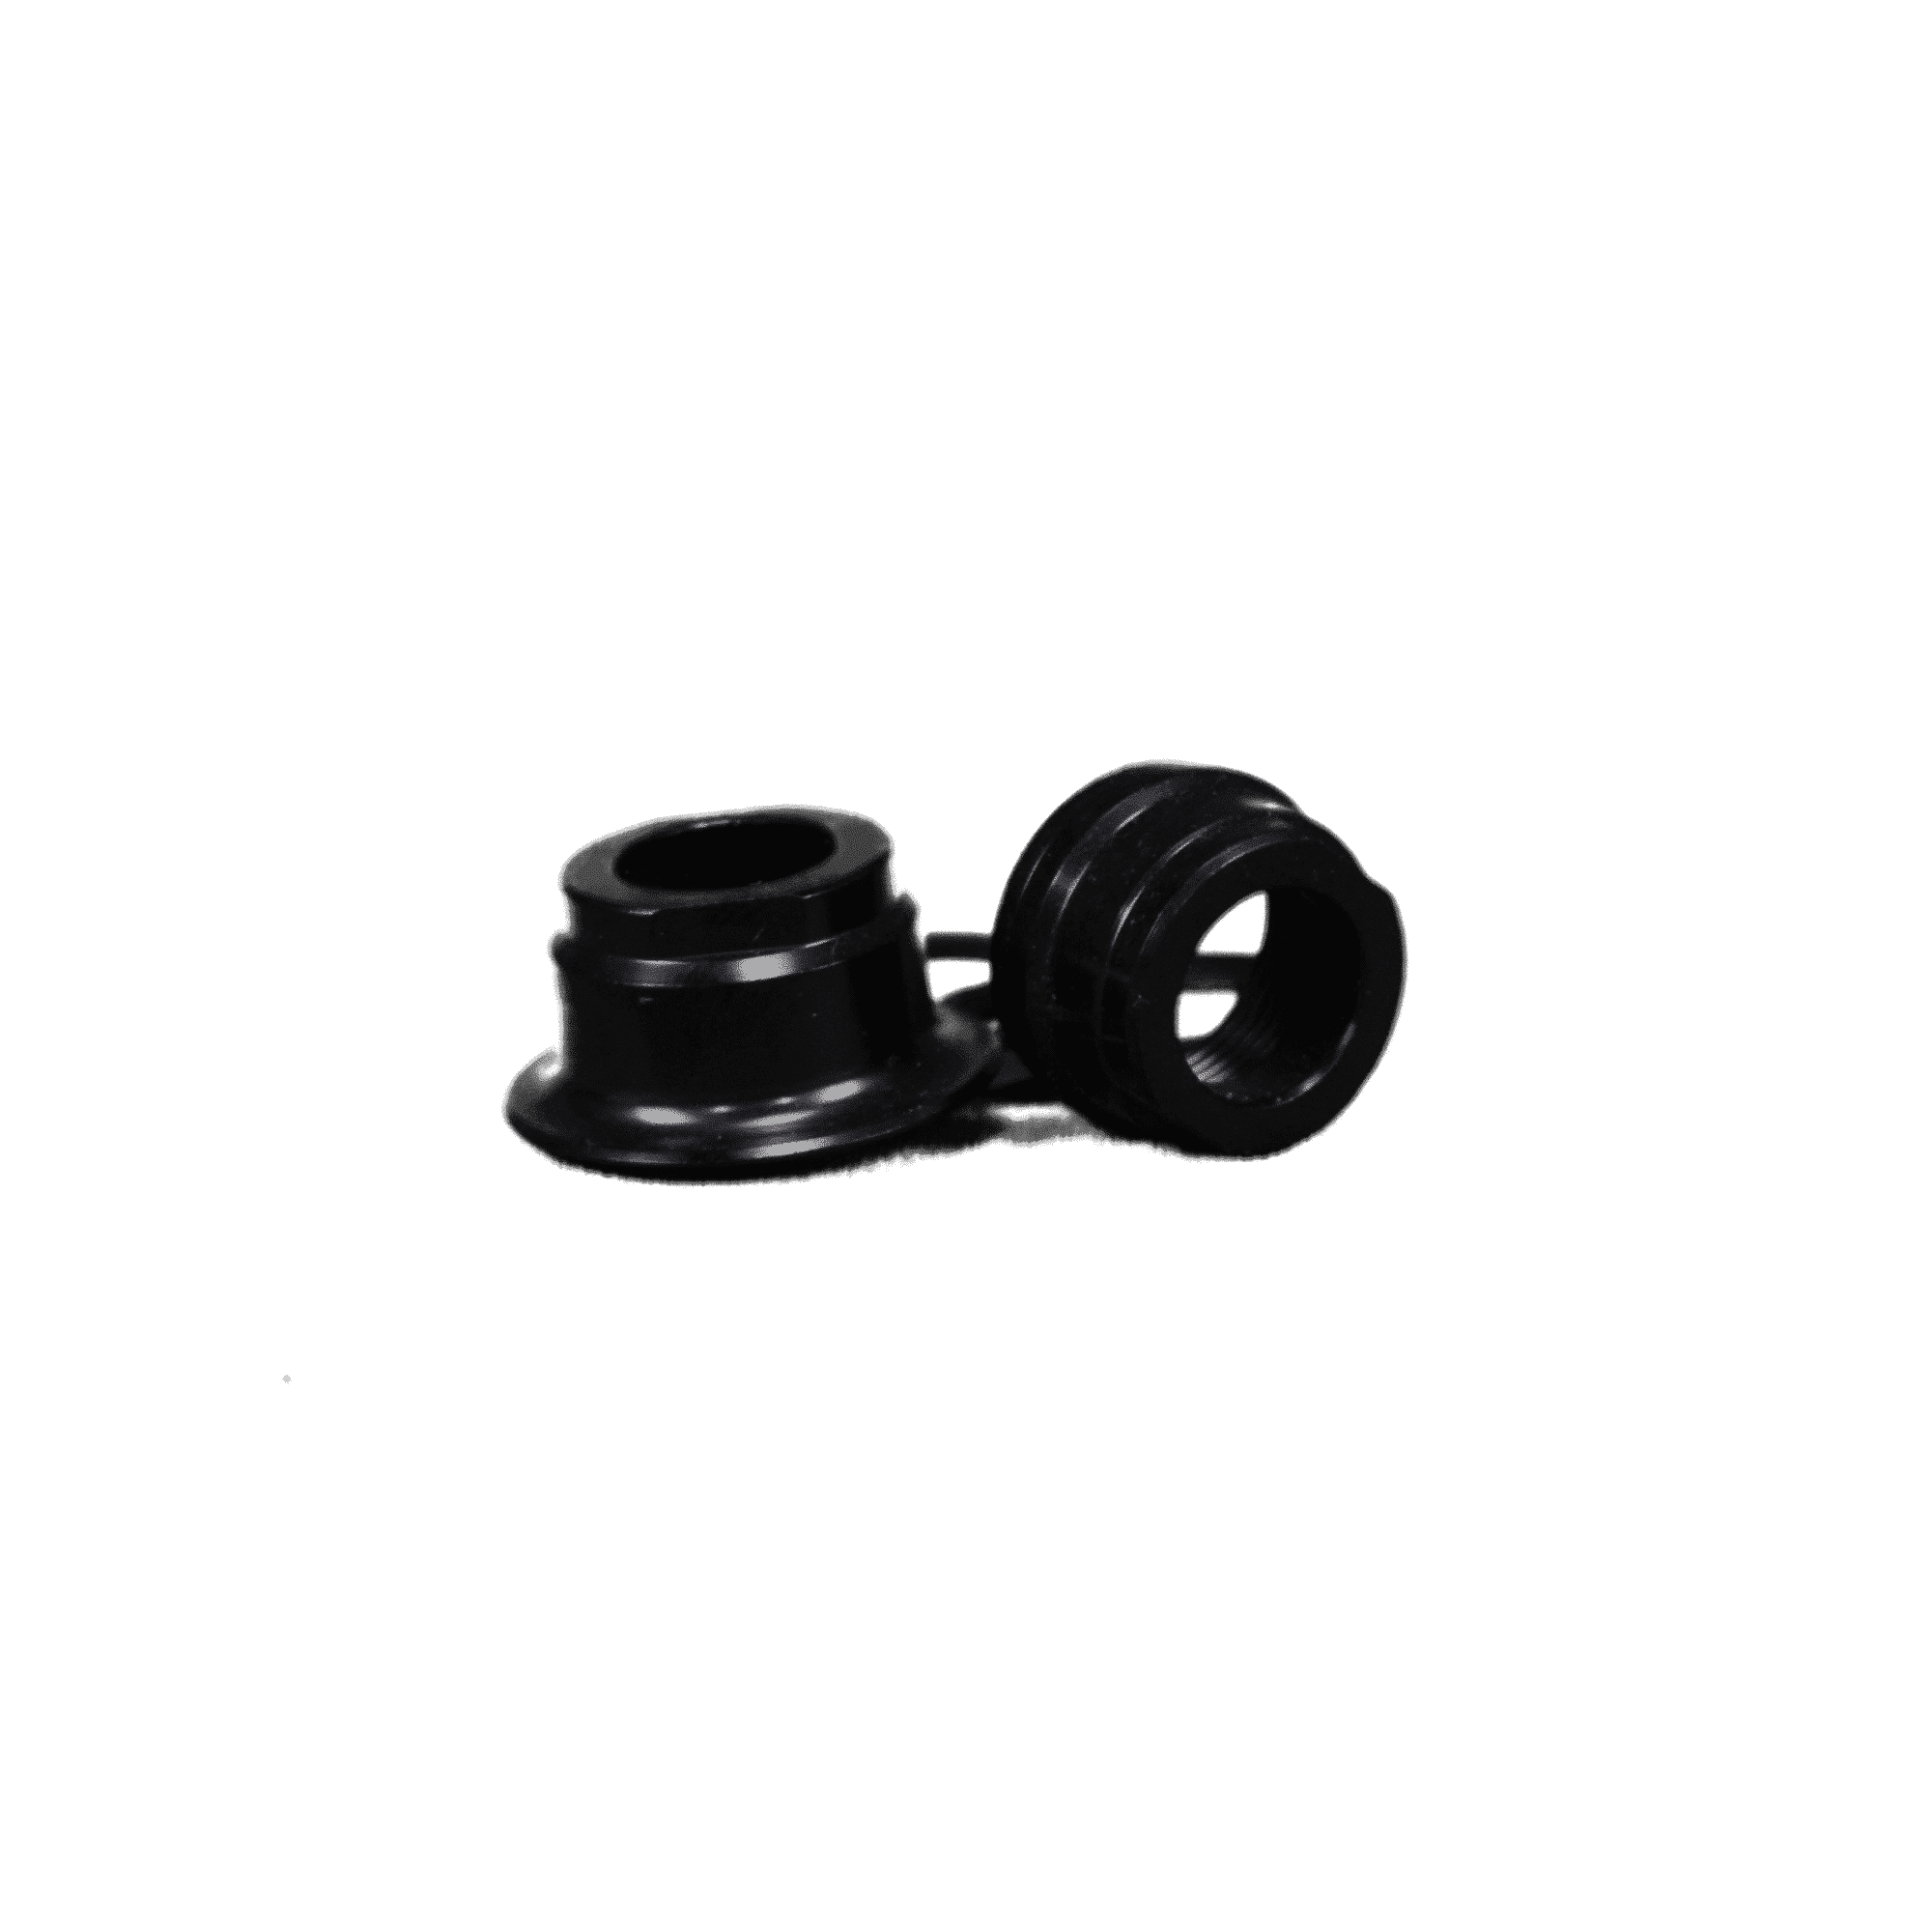 135 X 12 MM THRU AXLE ADAPTERS | 9th Wave Cycling